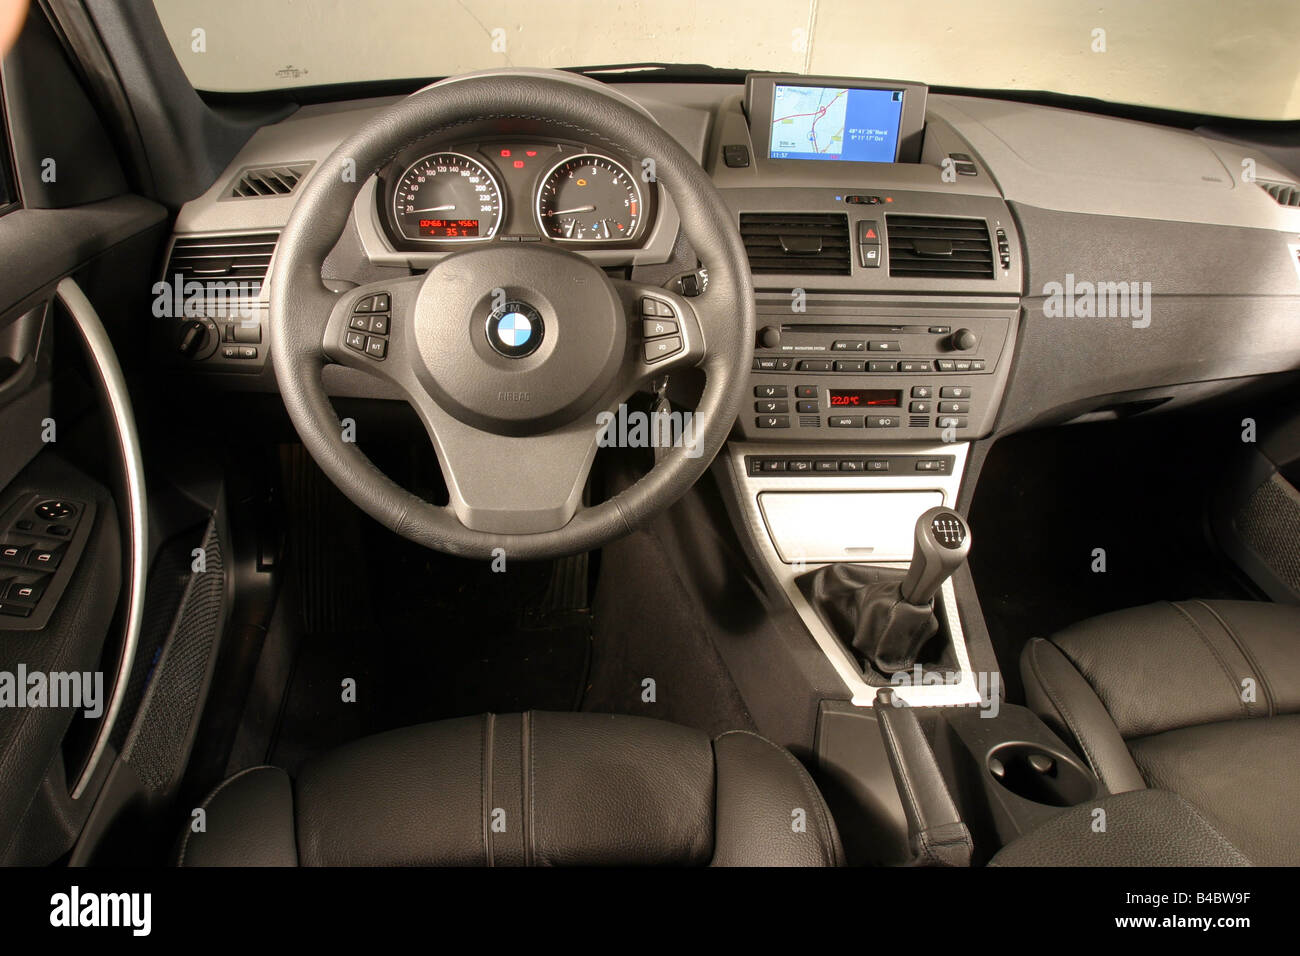 Car bmw x3 3 0d cross country vehicle model year 2003 blue interior view interior view cockpit technique accessory acc